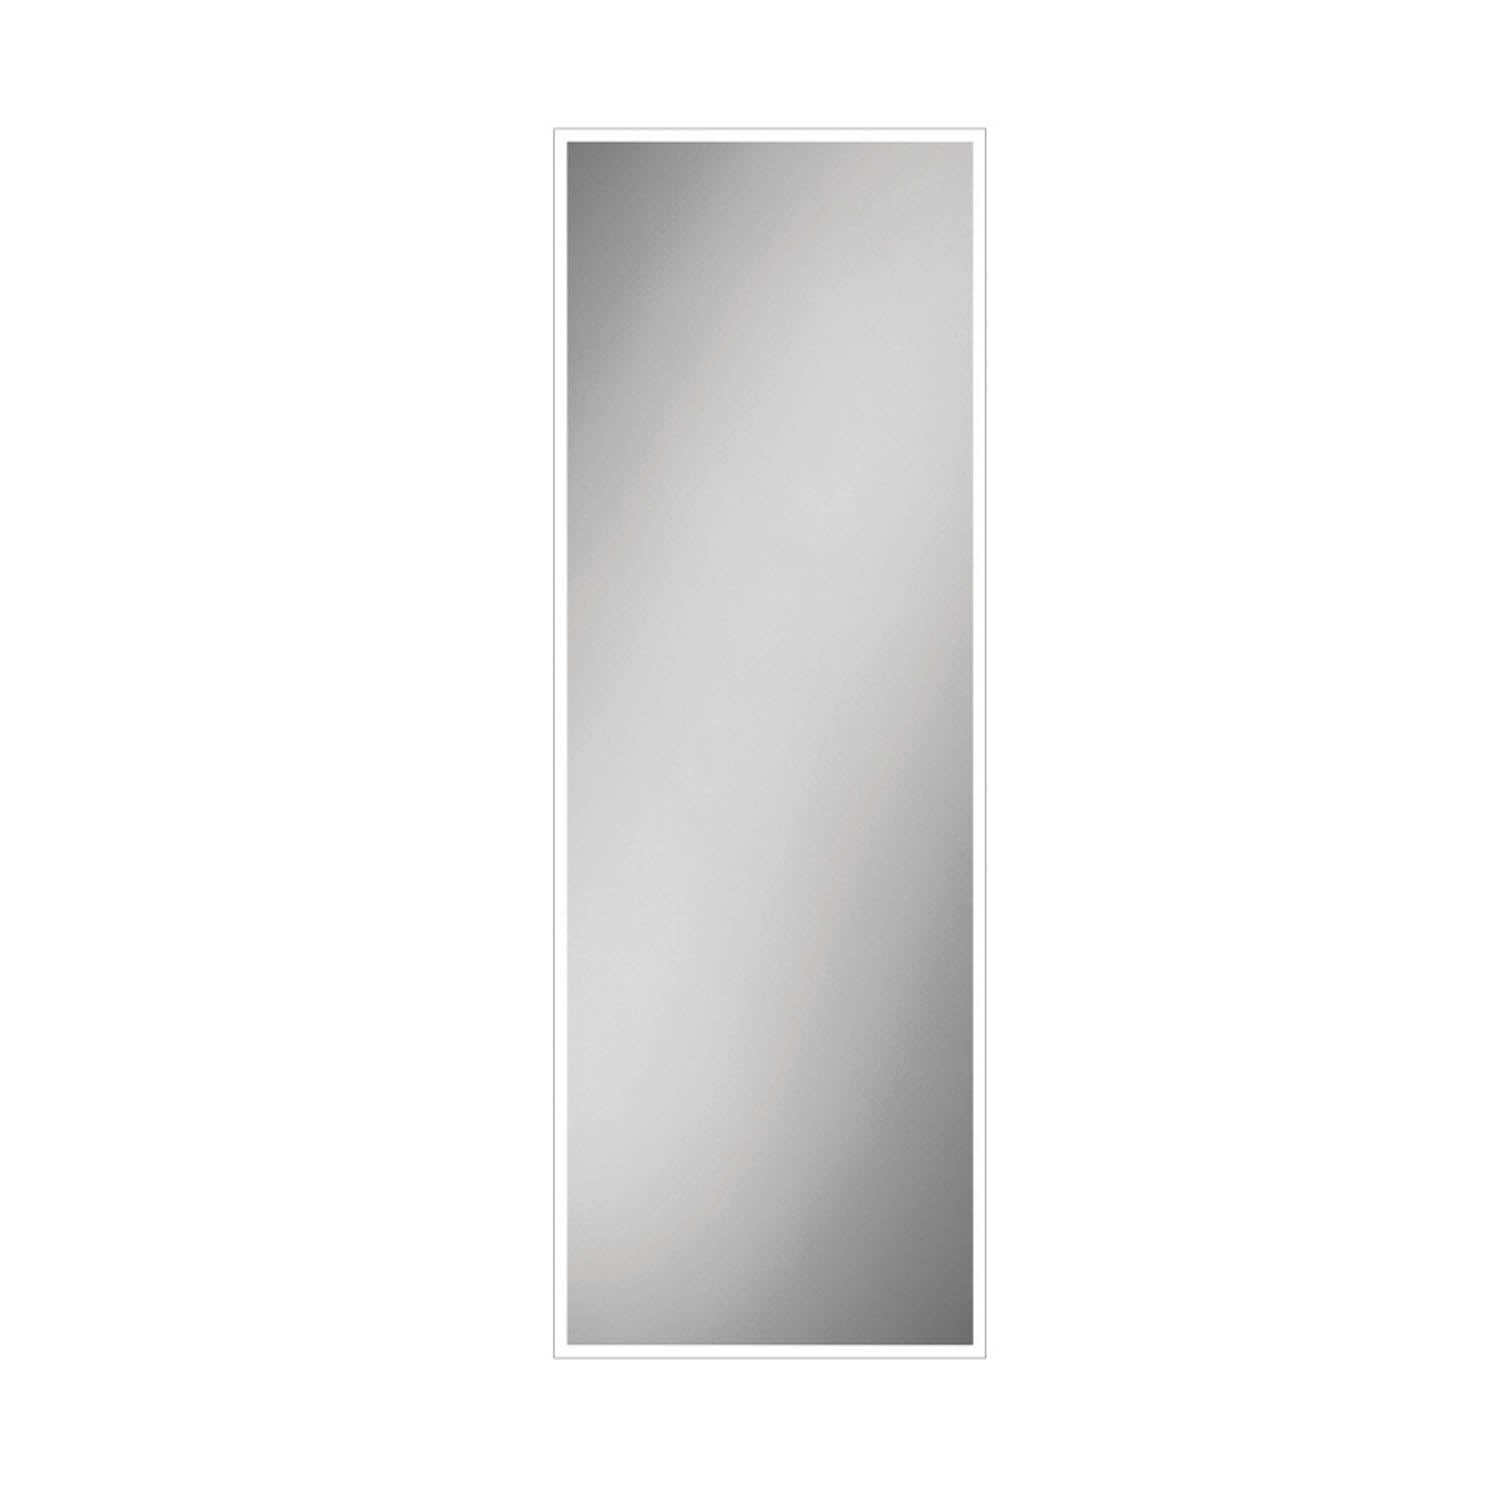 1400x600mm Front Lit LED Light Mirror on a white background